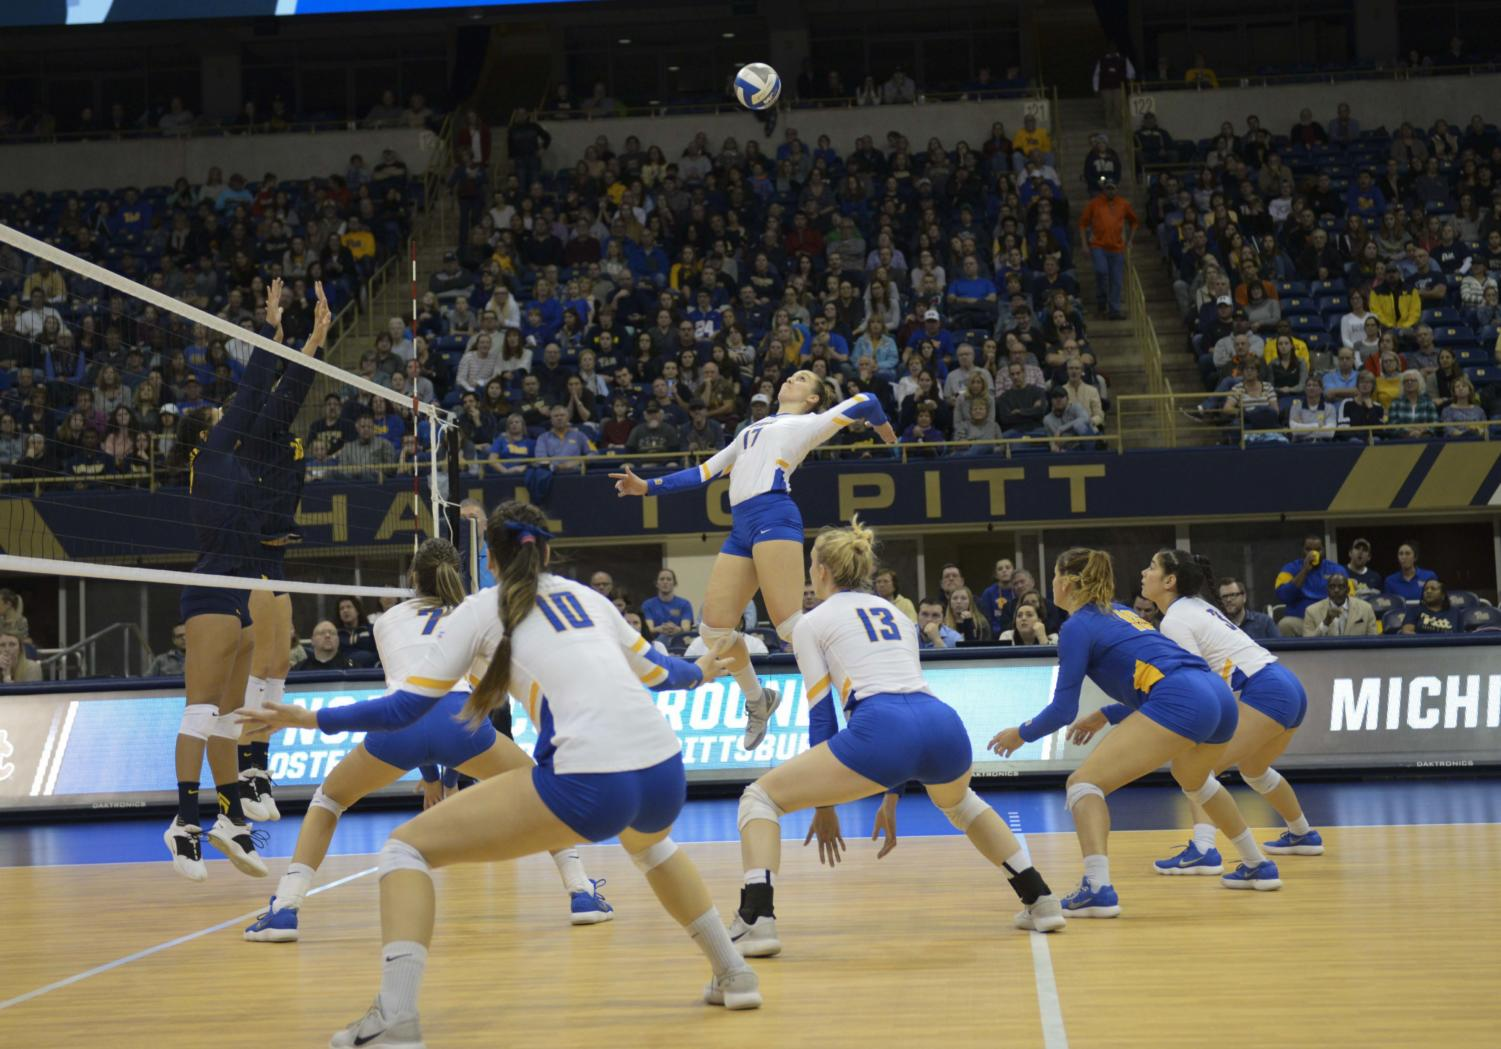 Pitt women's volleyball was picked for the first time in program history to win the ACC this year.